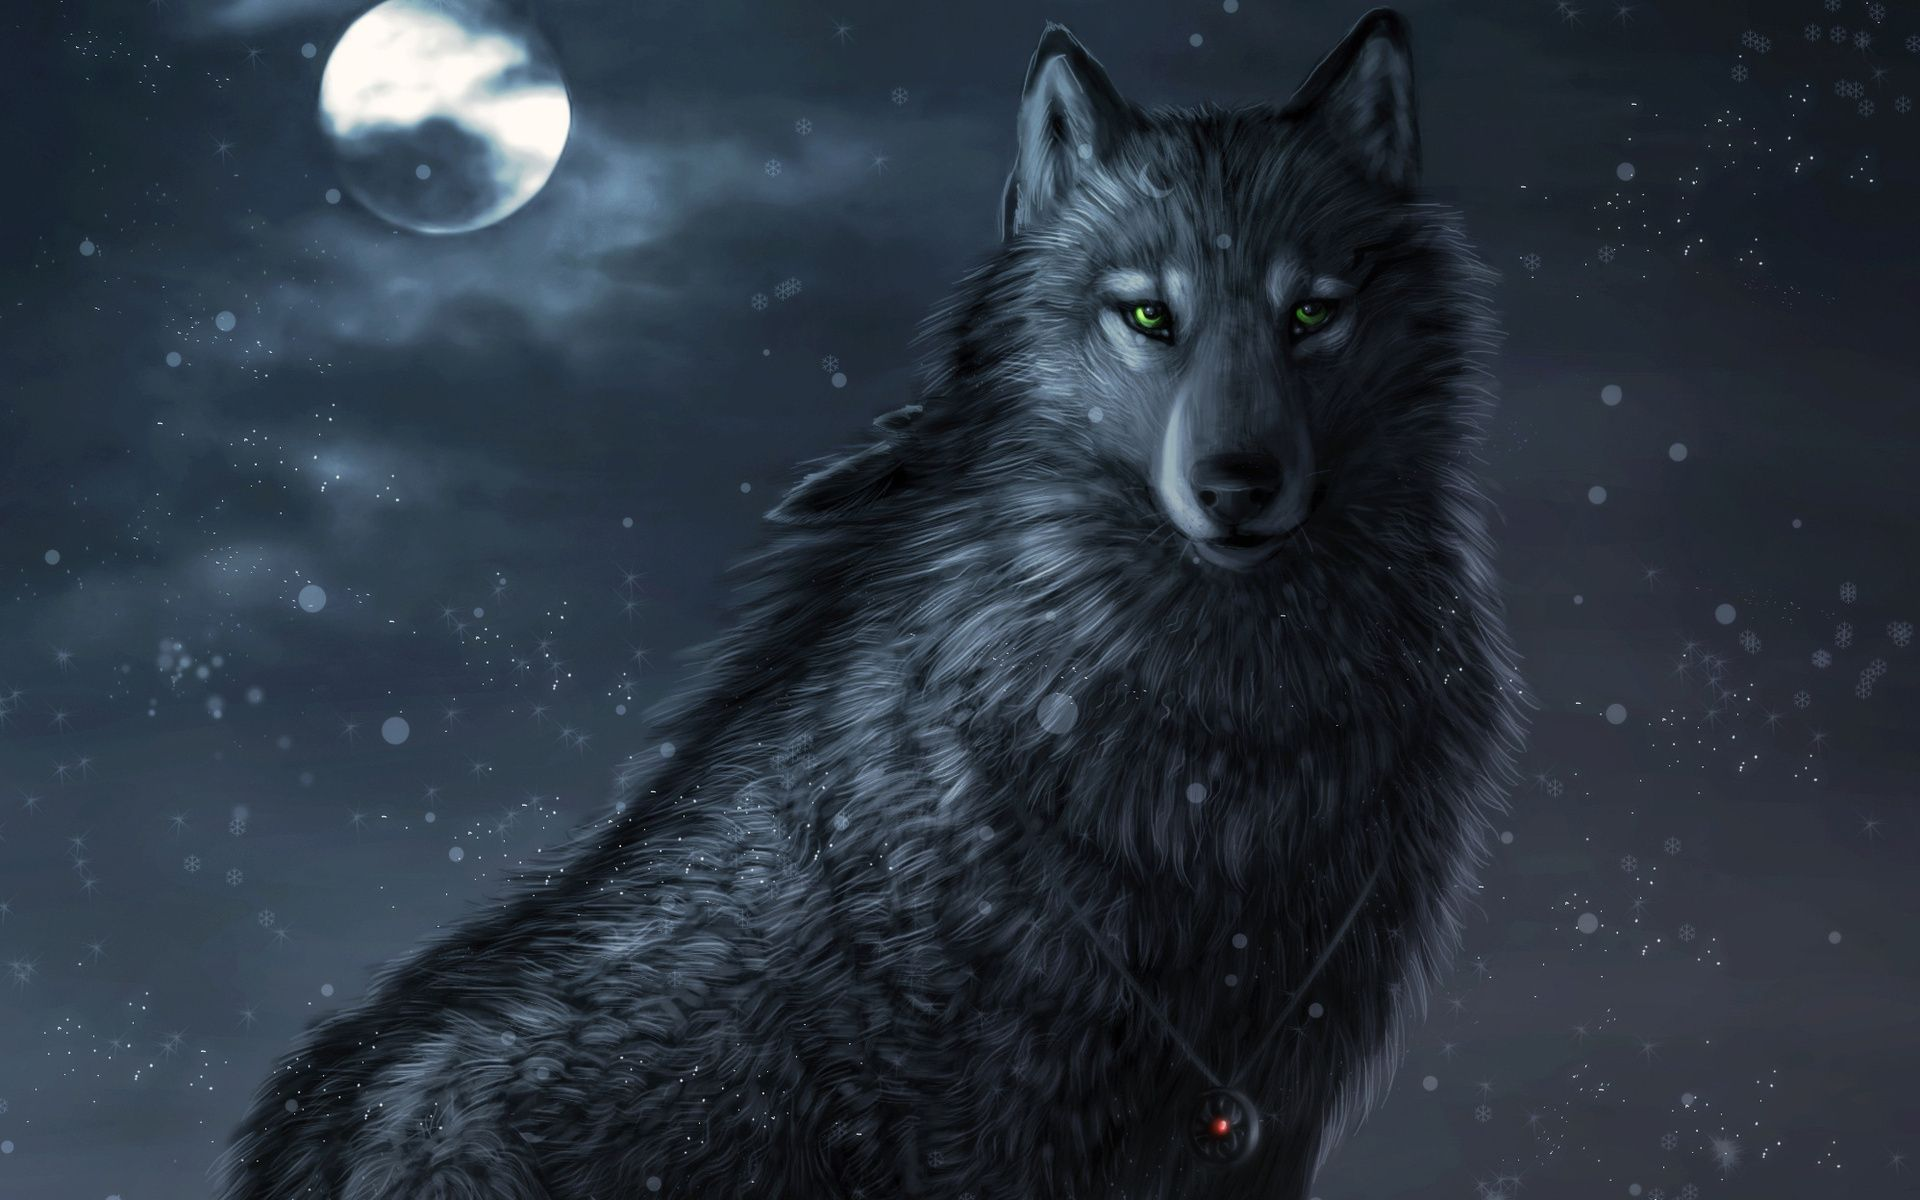 Wolf Hd Wallpapers Backgrounds Wallpaper 1920 1200 Animated Wolf